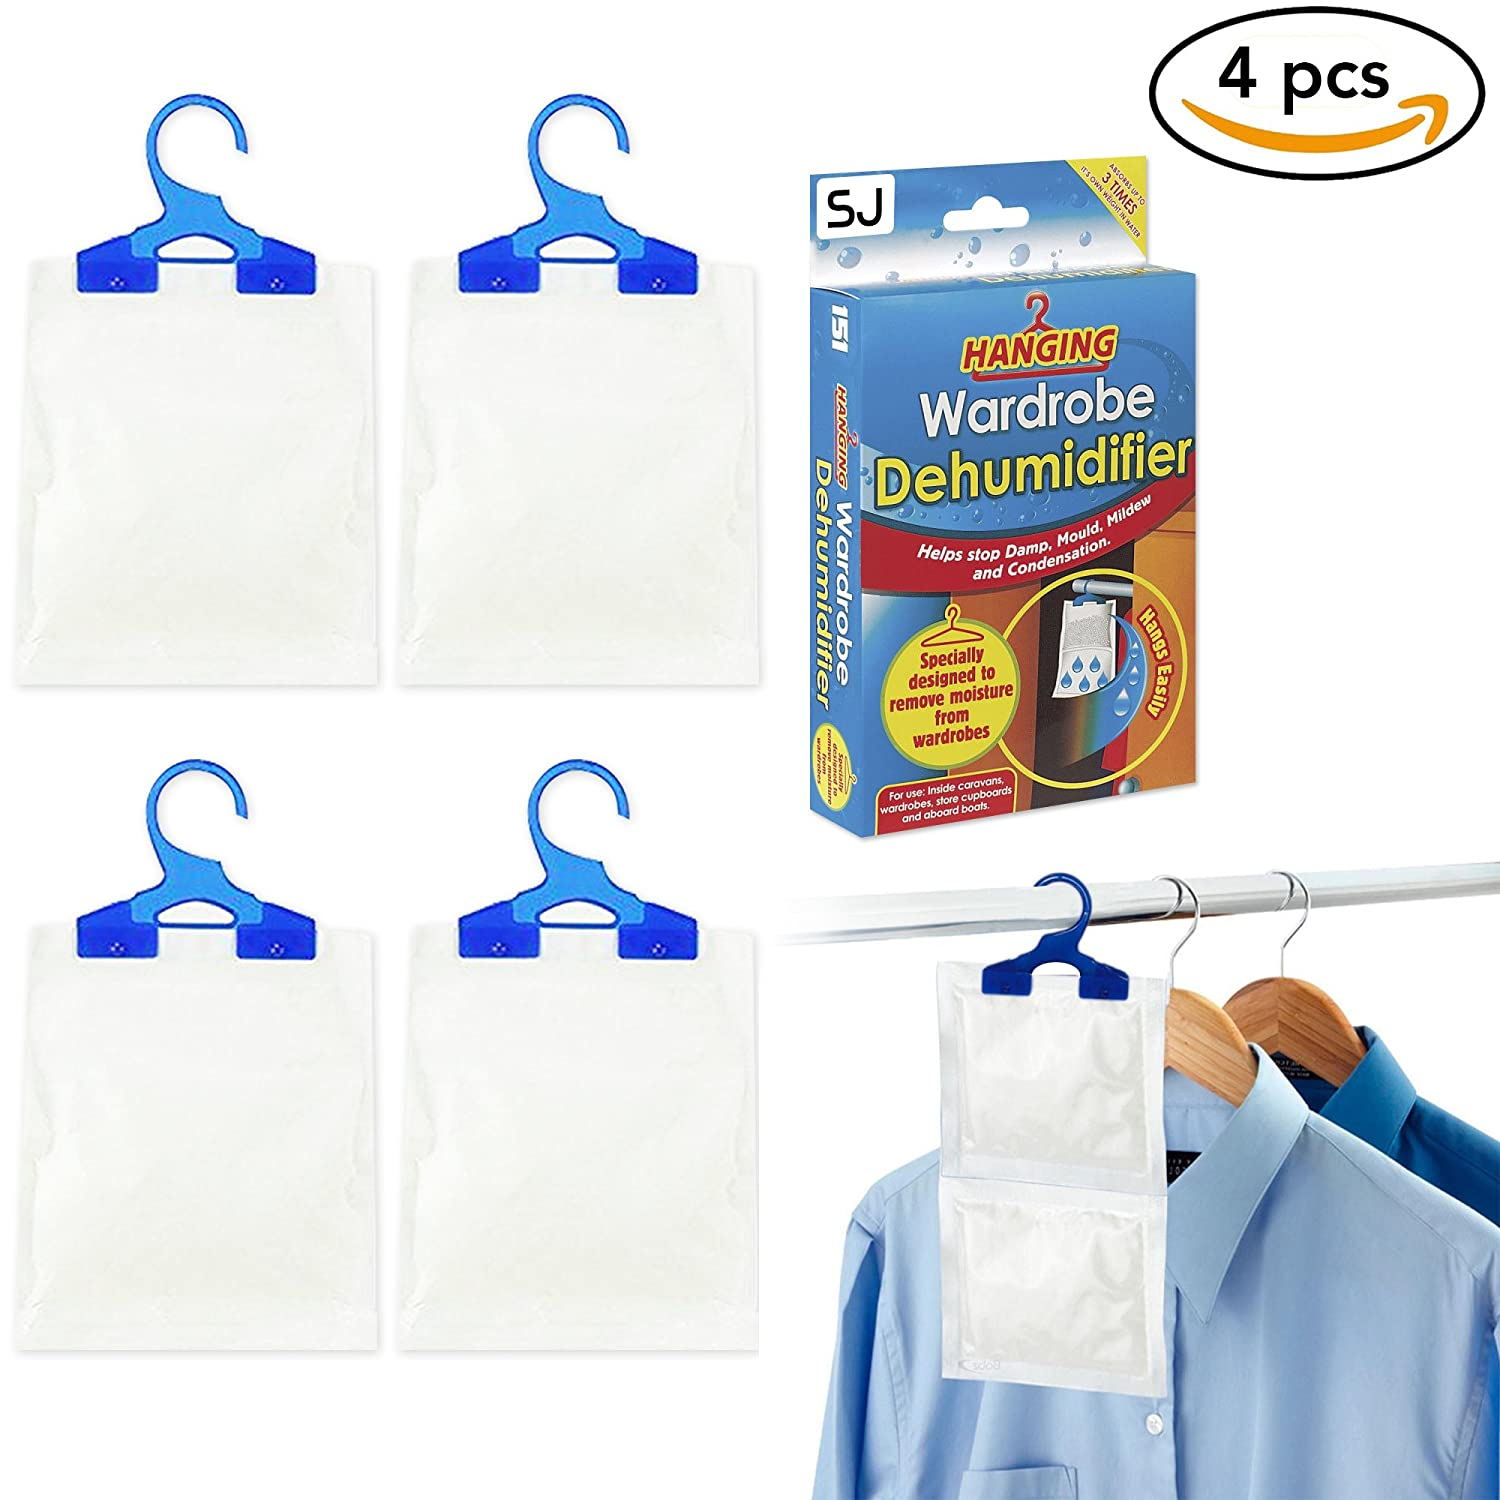 SpiffyJack Hanging Dehumidifier For Moisture Wardrobe Bags Helps Stop Mustiness and Damp (4 Pack)